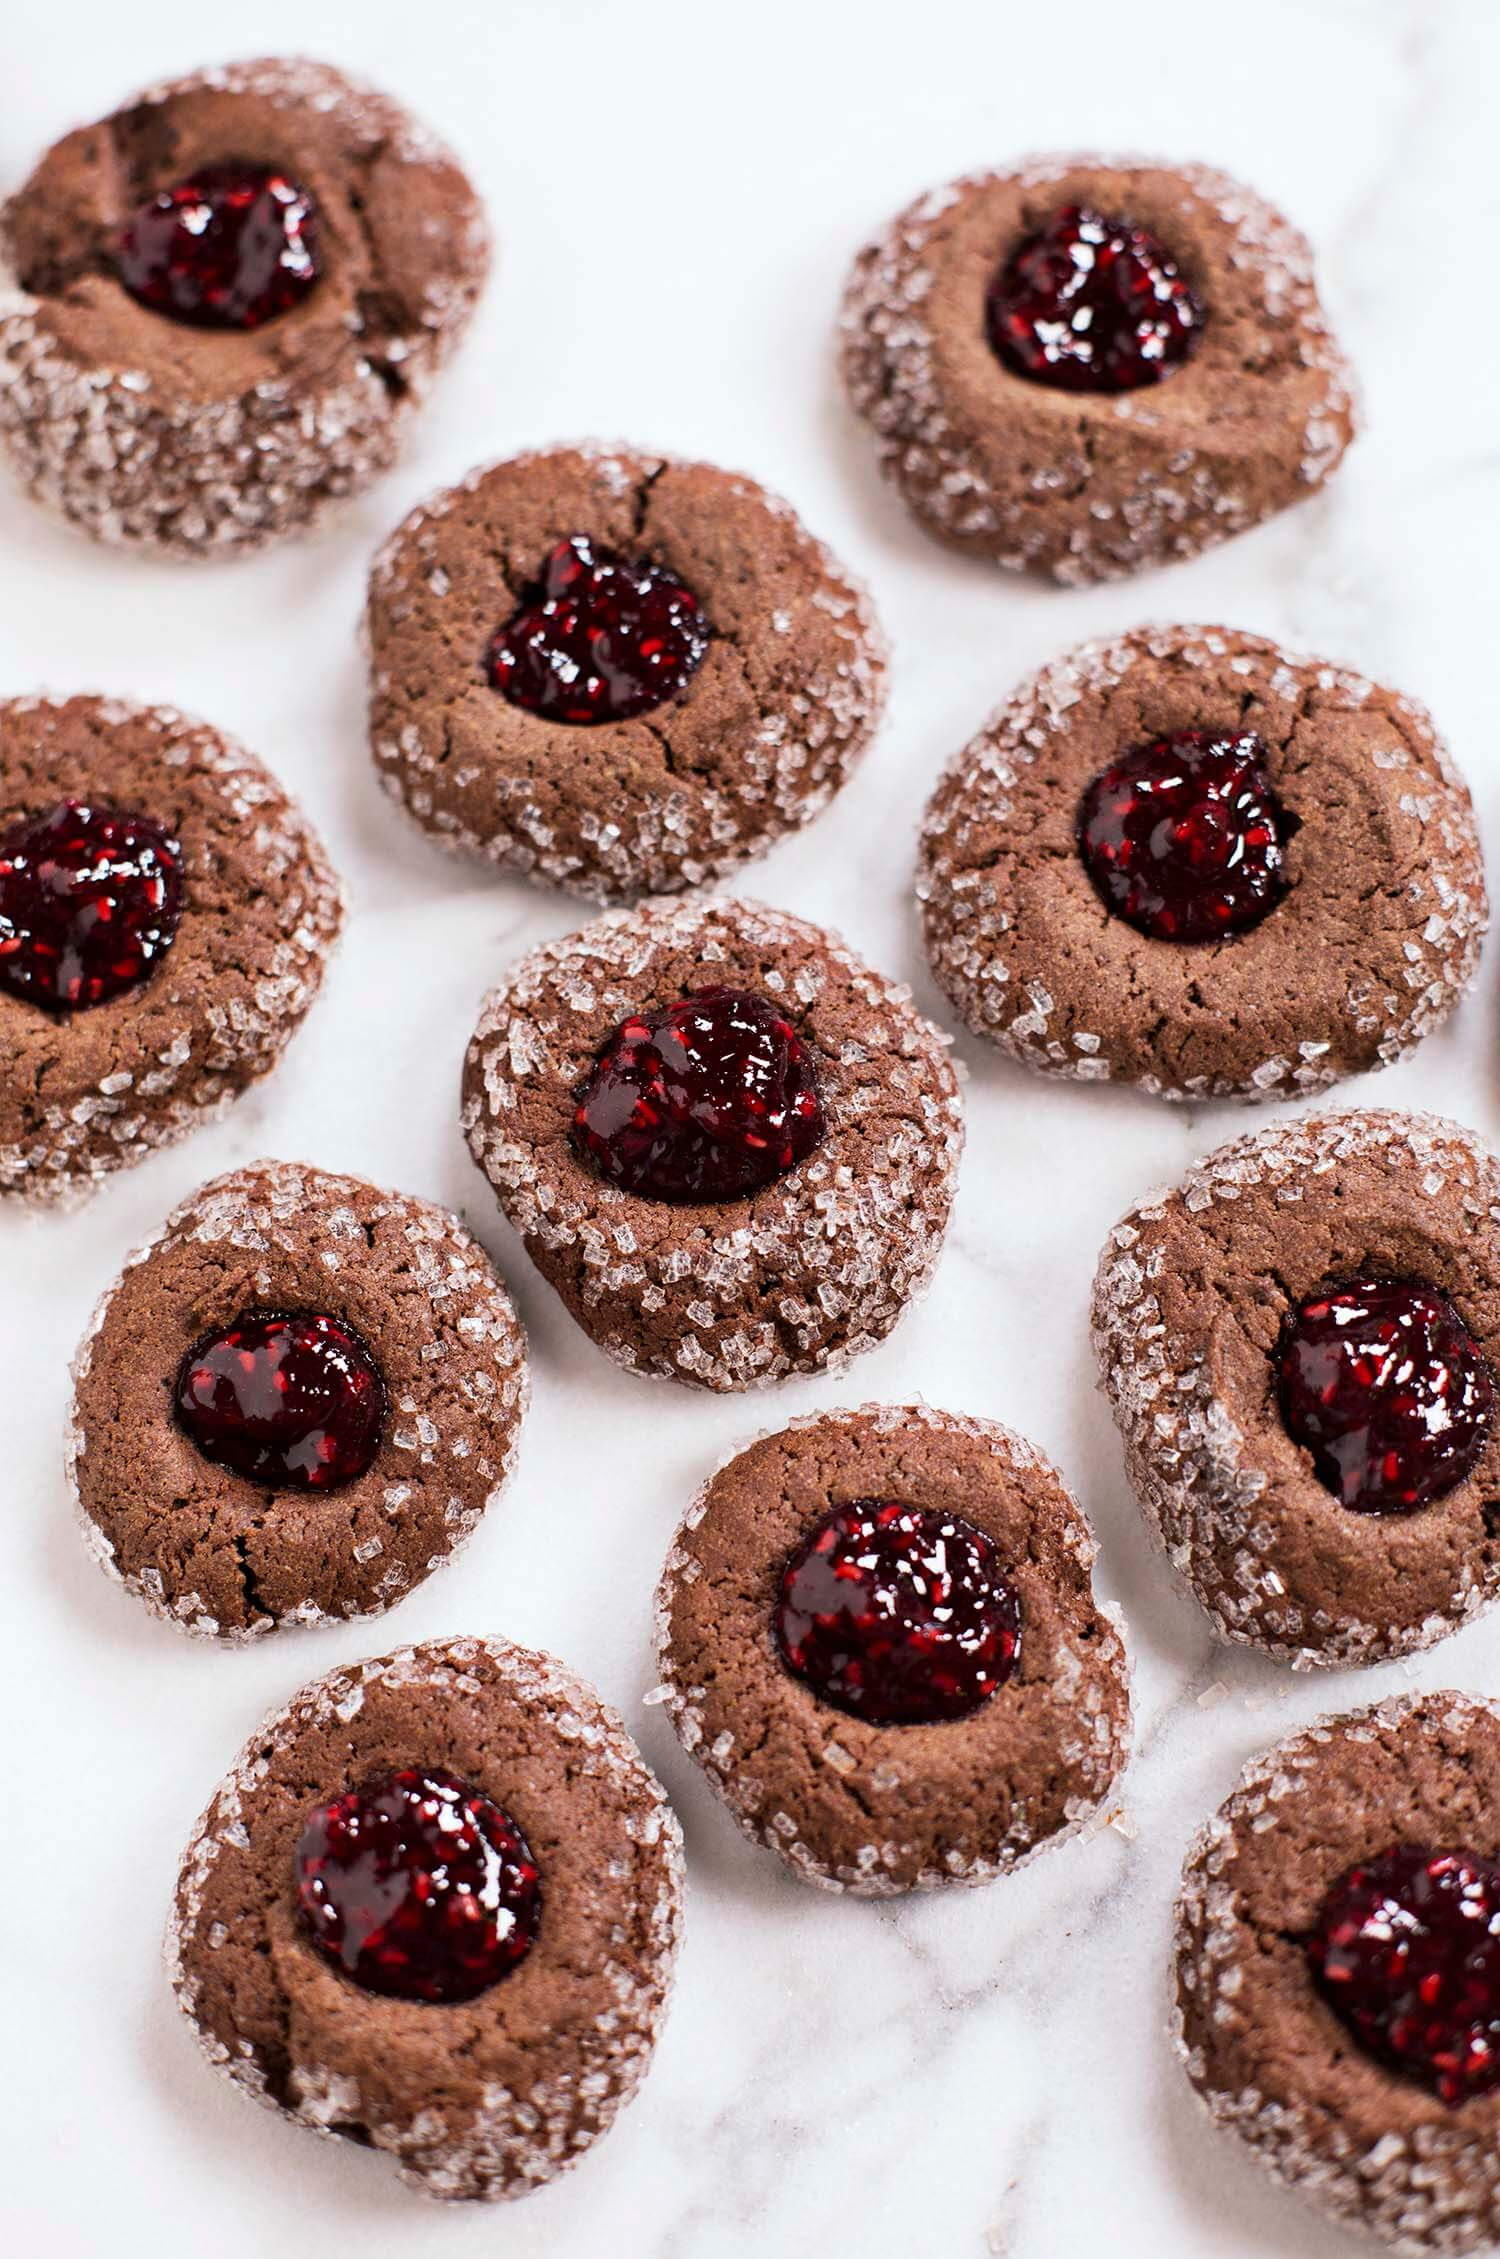 Chocolate thumbprint cookies with red wine raspberry jam (via abeautifulmess.com)